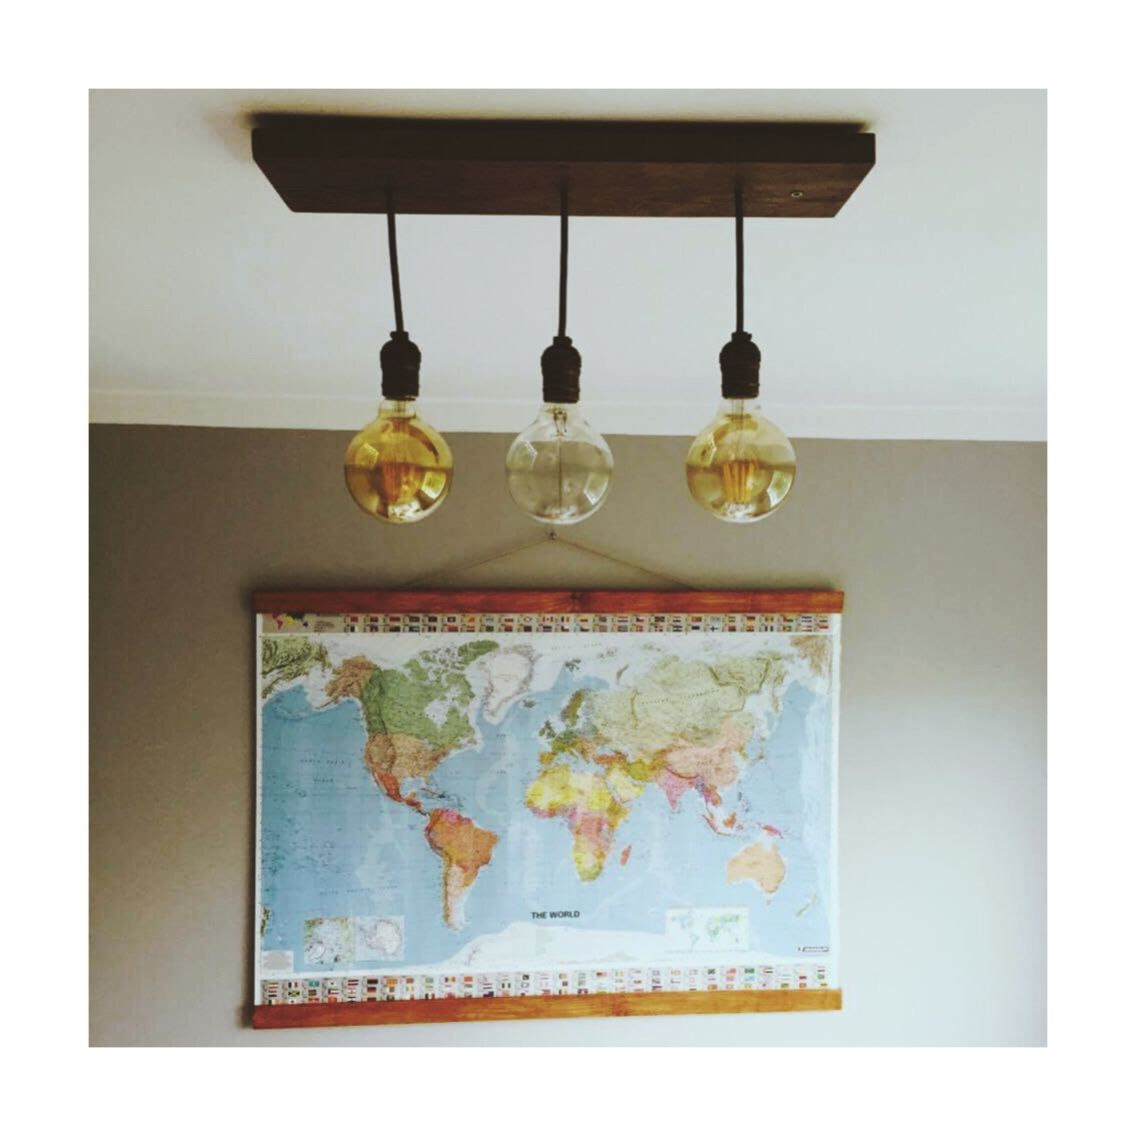 My bedroom interior in Kaunas - DIY map and ceiling lamp makes my ...